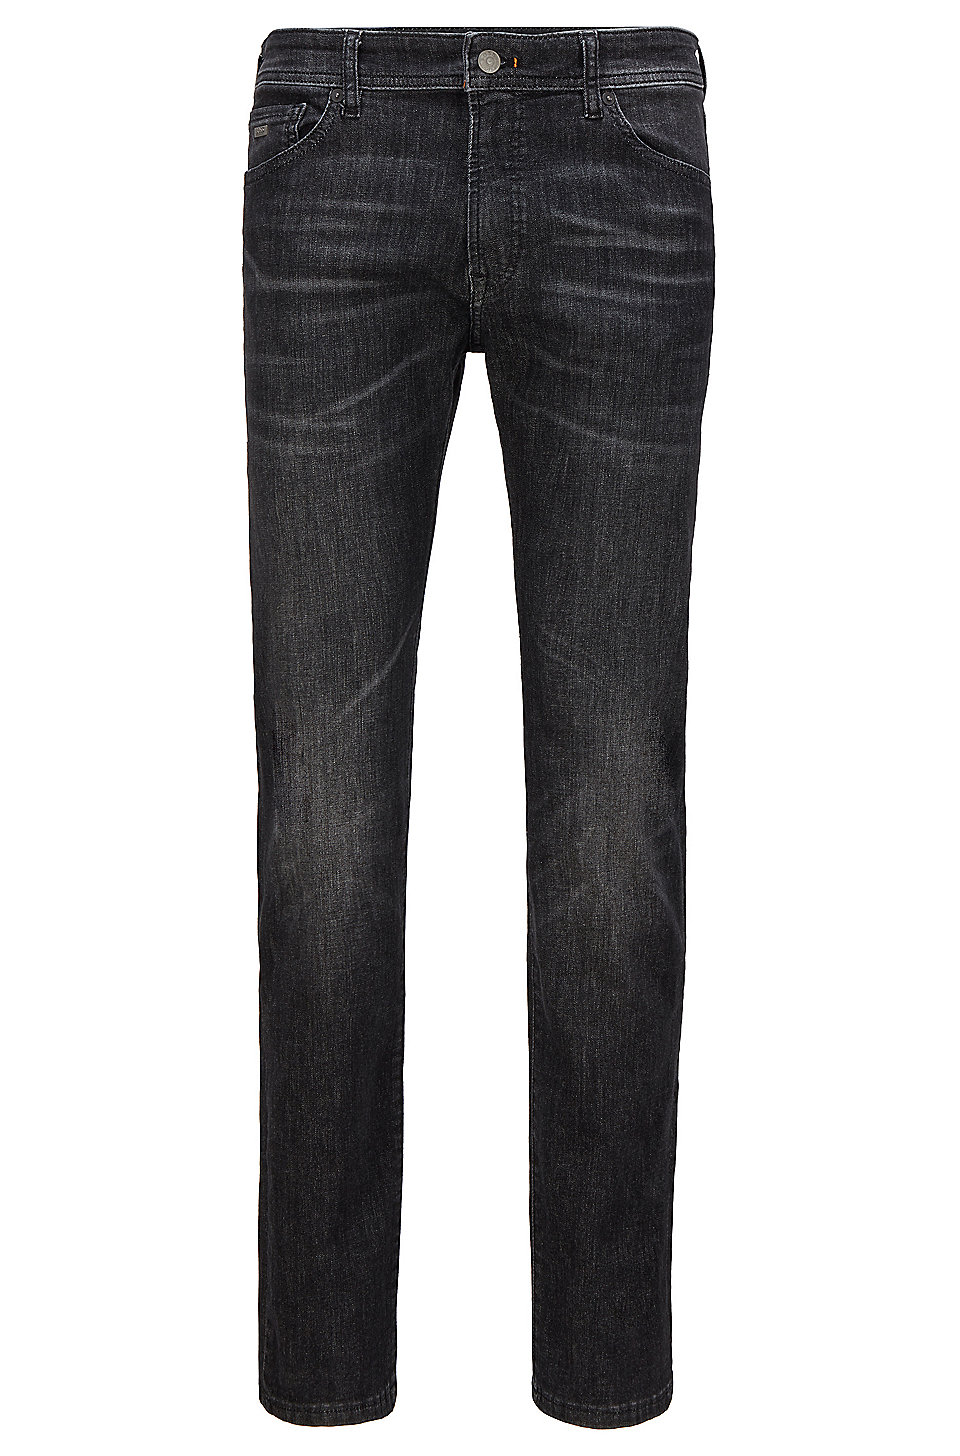 BOSS - Regular-fit jeans in black super-stretch denim